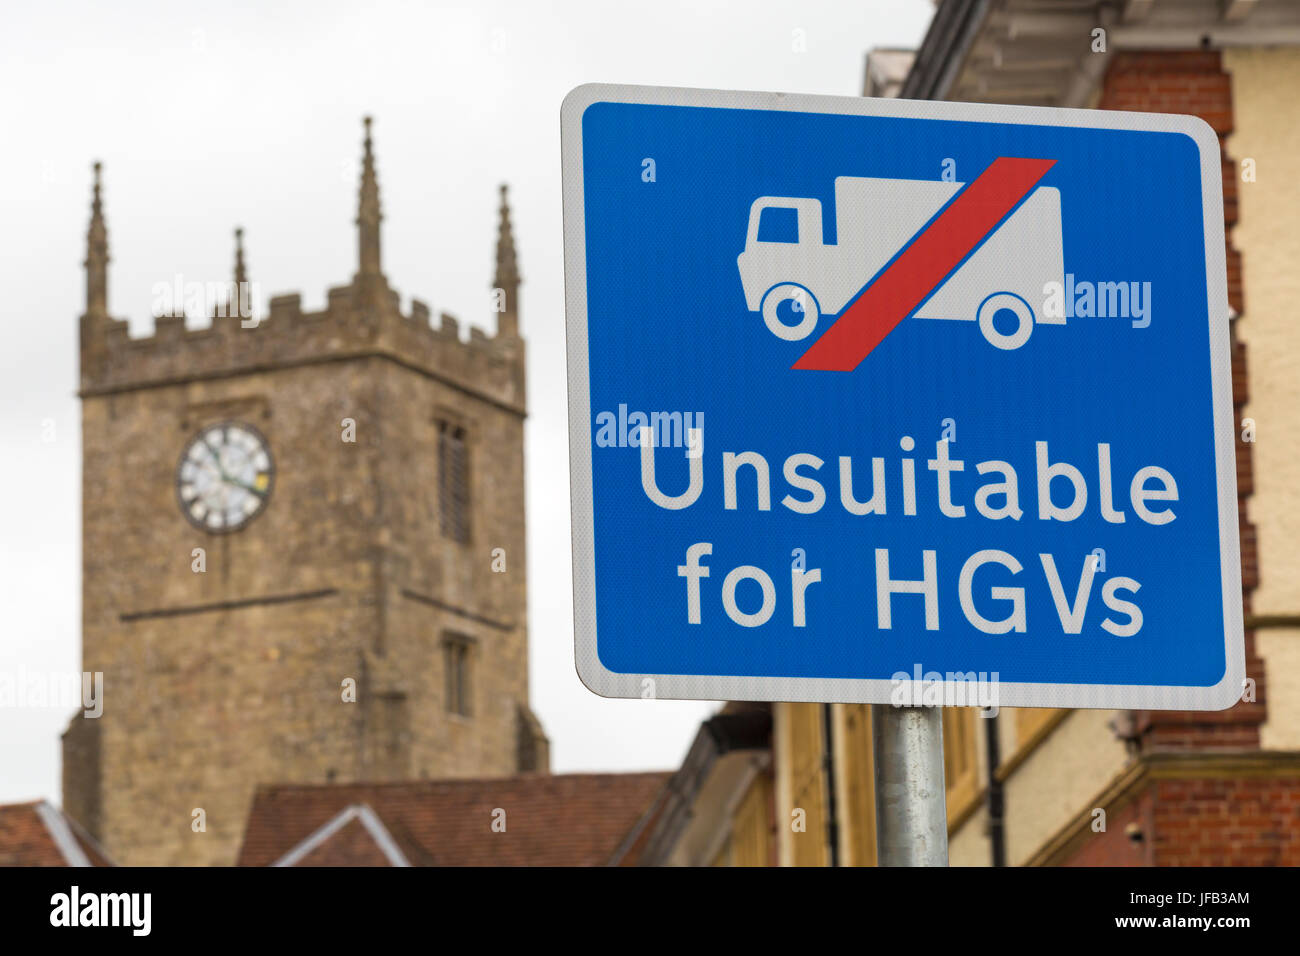 Unsuitable for HGVs road sign at Marlborough, Wiltshire in June - Stock Image